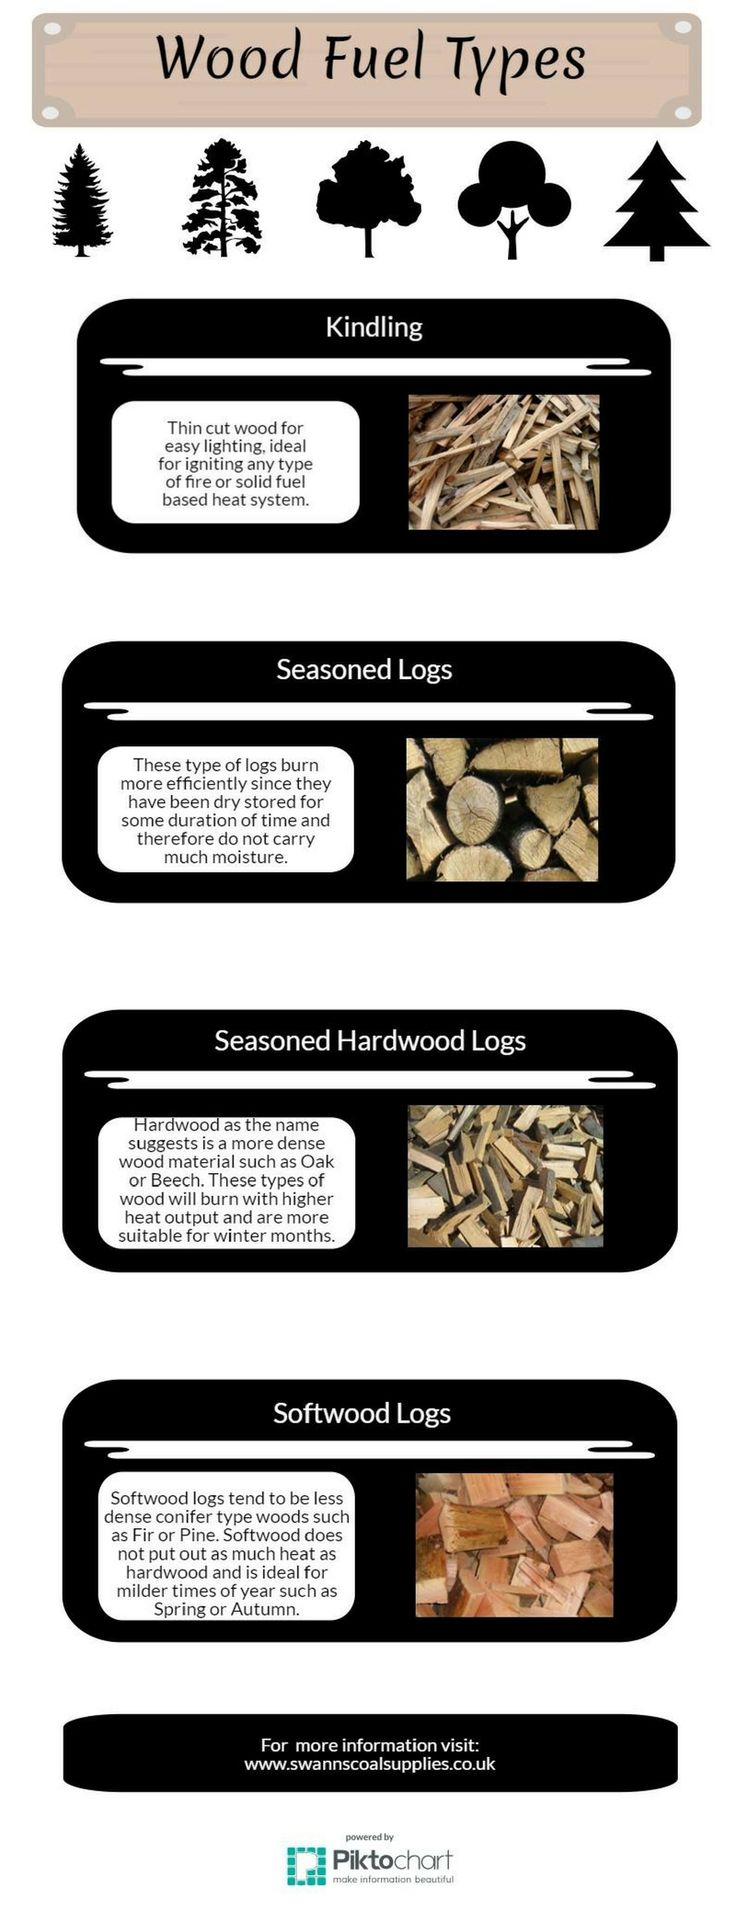 http://www.swannscoalsupplies.co.uk/ Here are some direct wood fuel types for open fires and multi stoves. Charles Swann (Walsall) Ltd, Old Landywood Lane, Essington, Wolverhampton, WV11 2AP